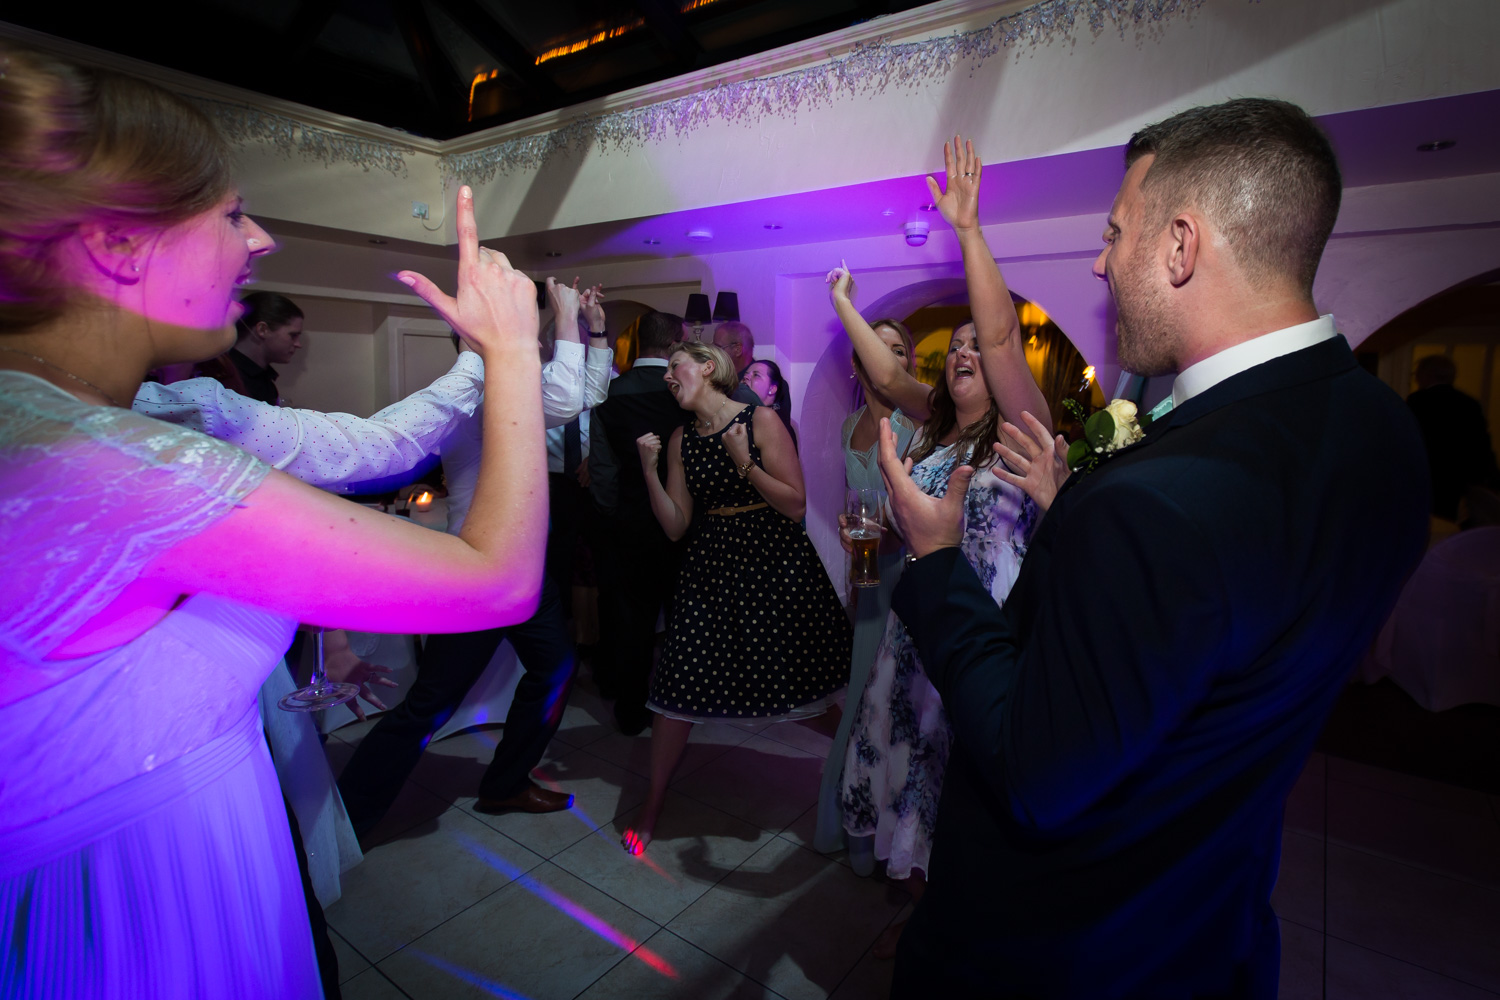 South-Wales-Wedding-Photographer-Mark-Barnes-Newport-The-old-barn-inn-Ginette-and-Lewis-blog-72.jpg